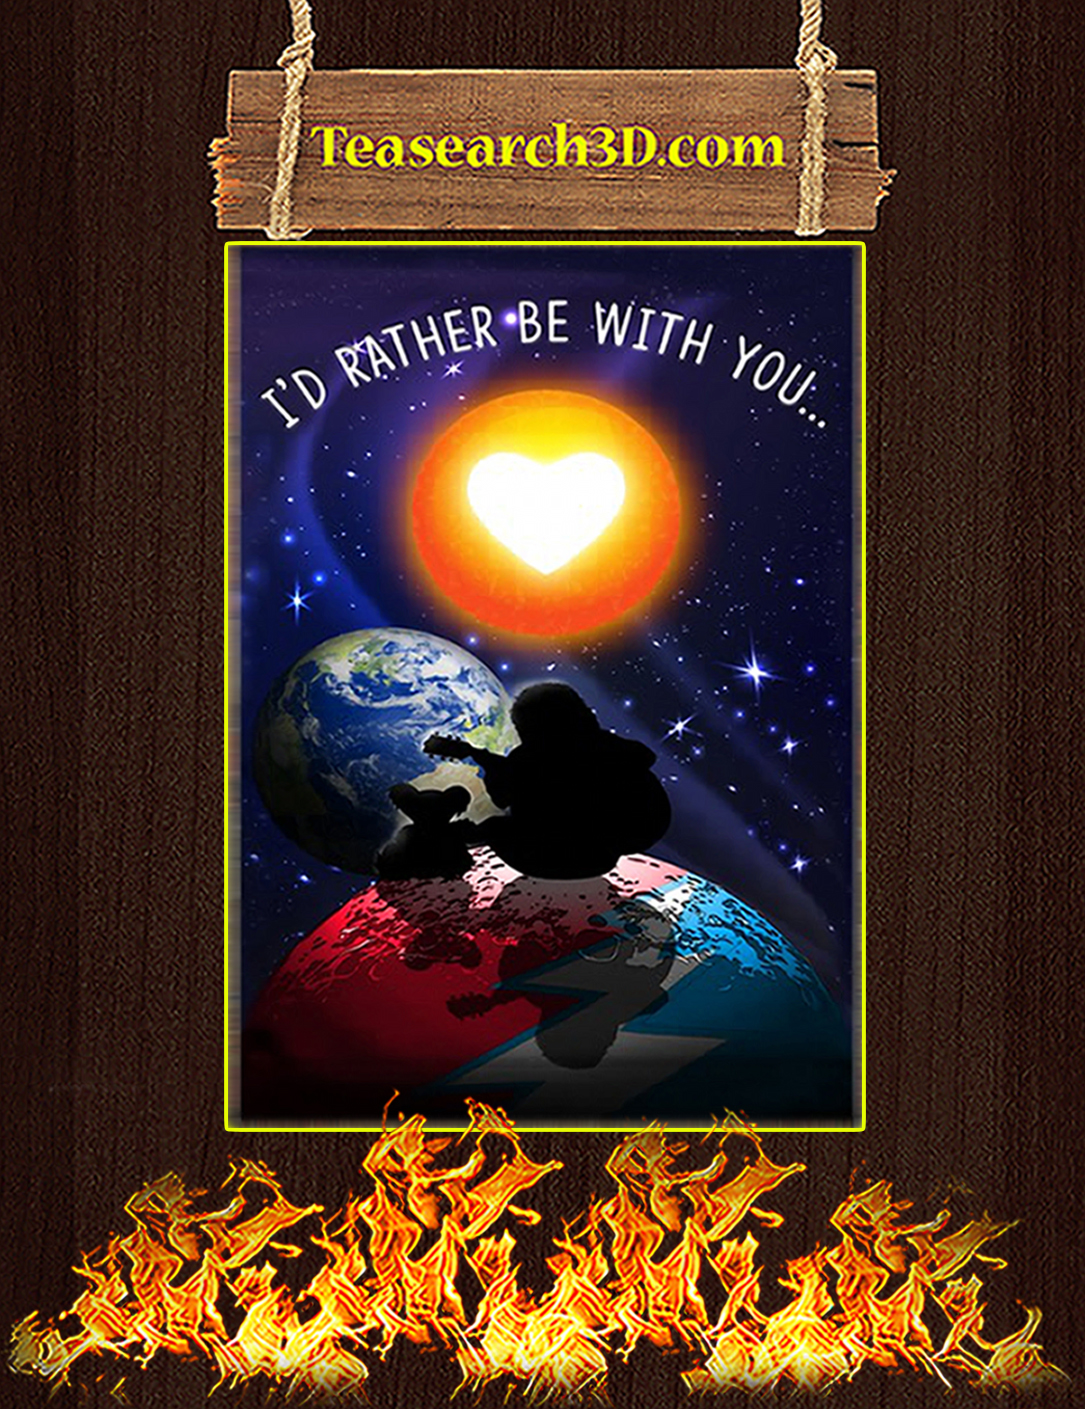 I'd rather be with you steven universe poster A2